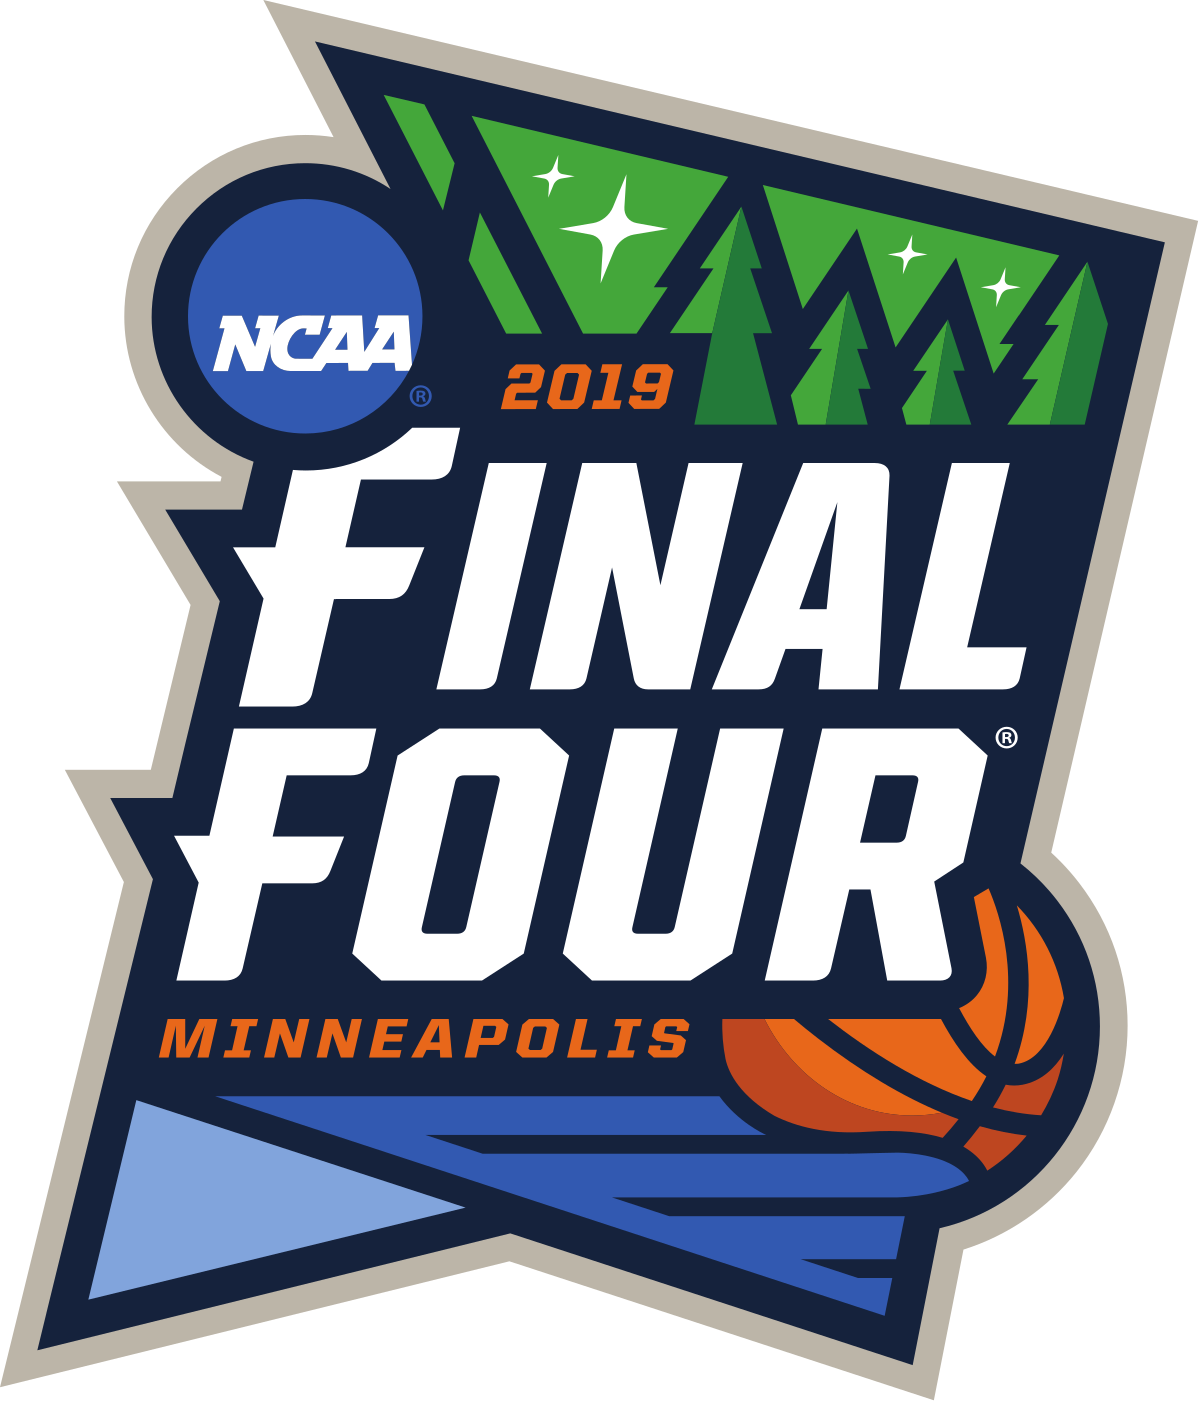 Ncaa march madness clipart png transparent download 2019 NCAA Division I Men\'s Basketball Tournament - Wikipedia png transparent download